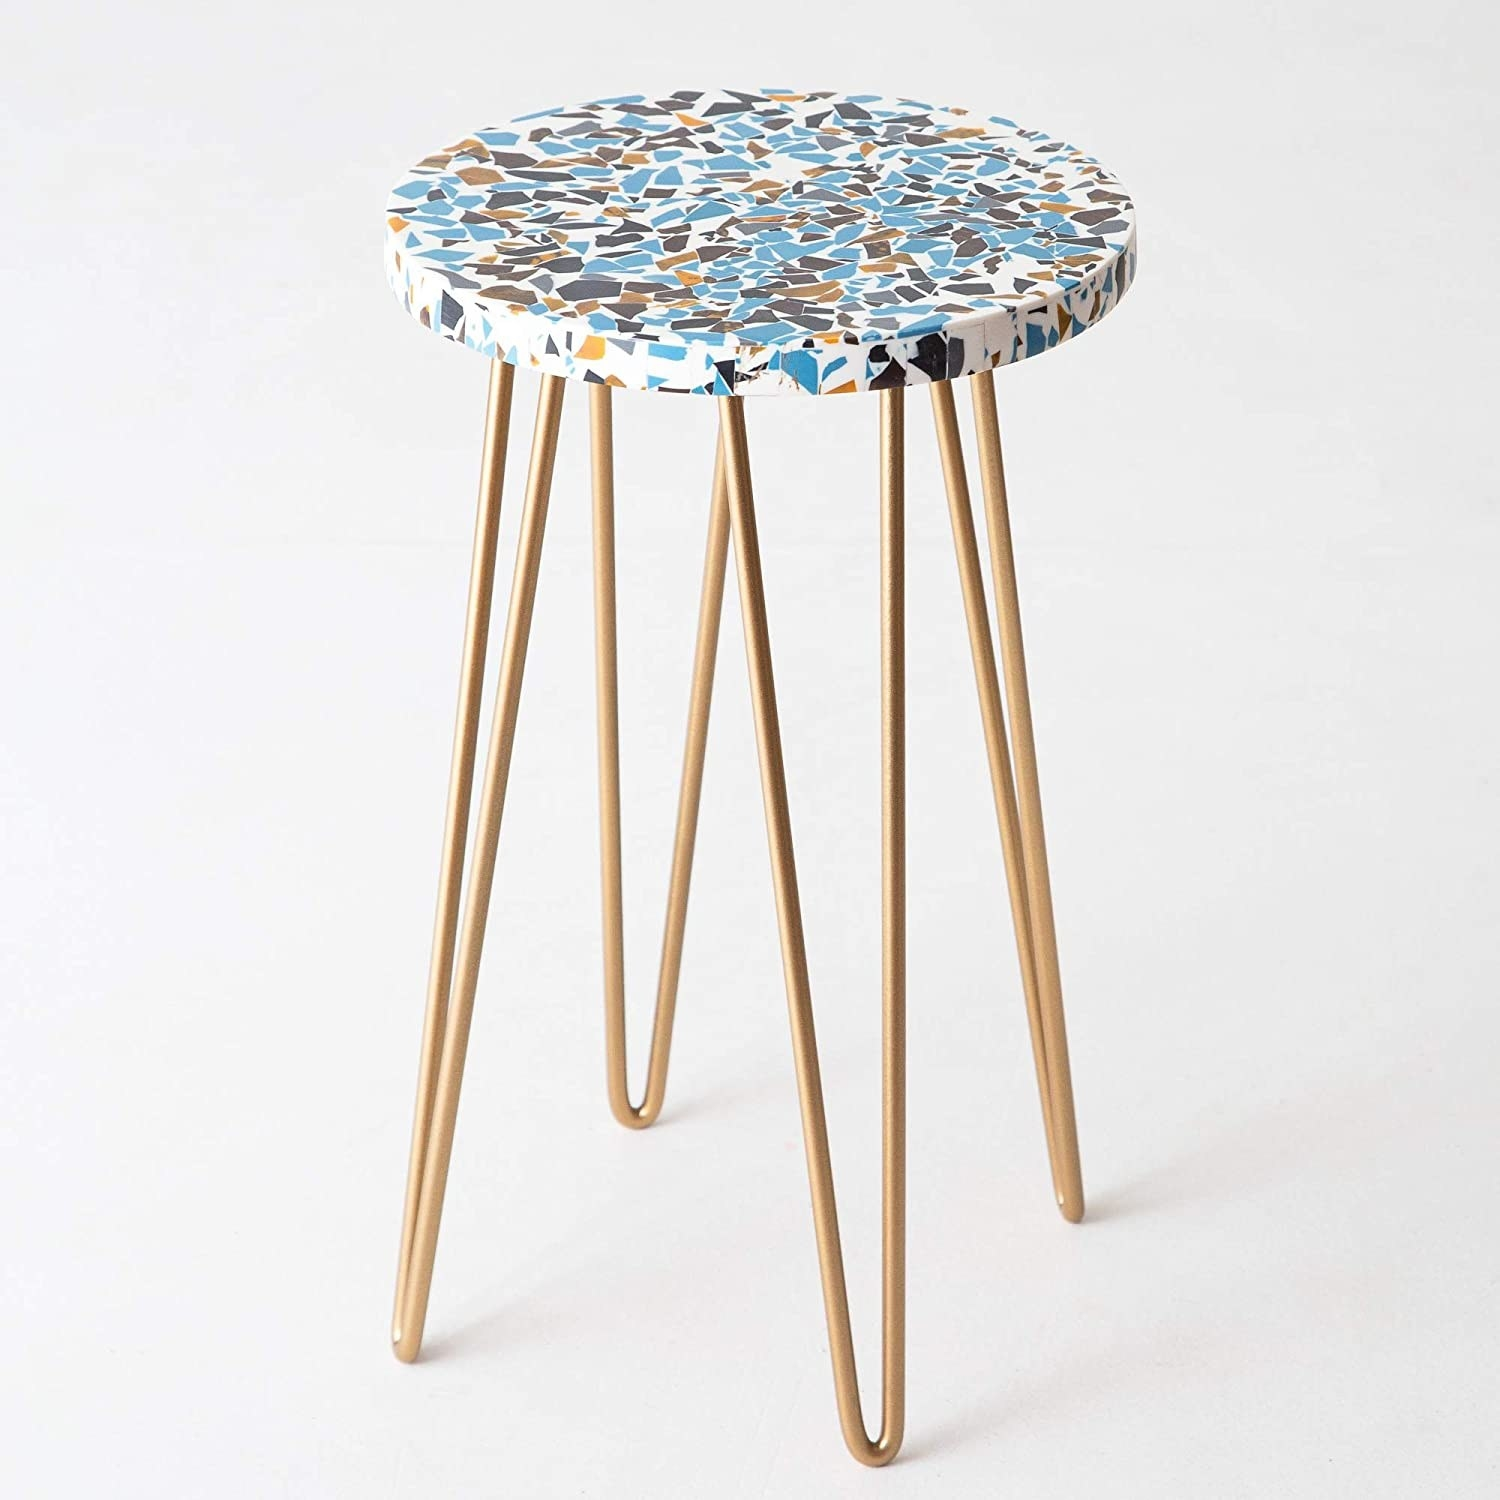 A resin stool with golden hairpin legs and an abstract print on the table top